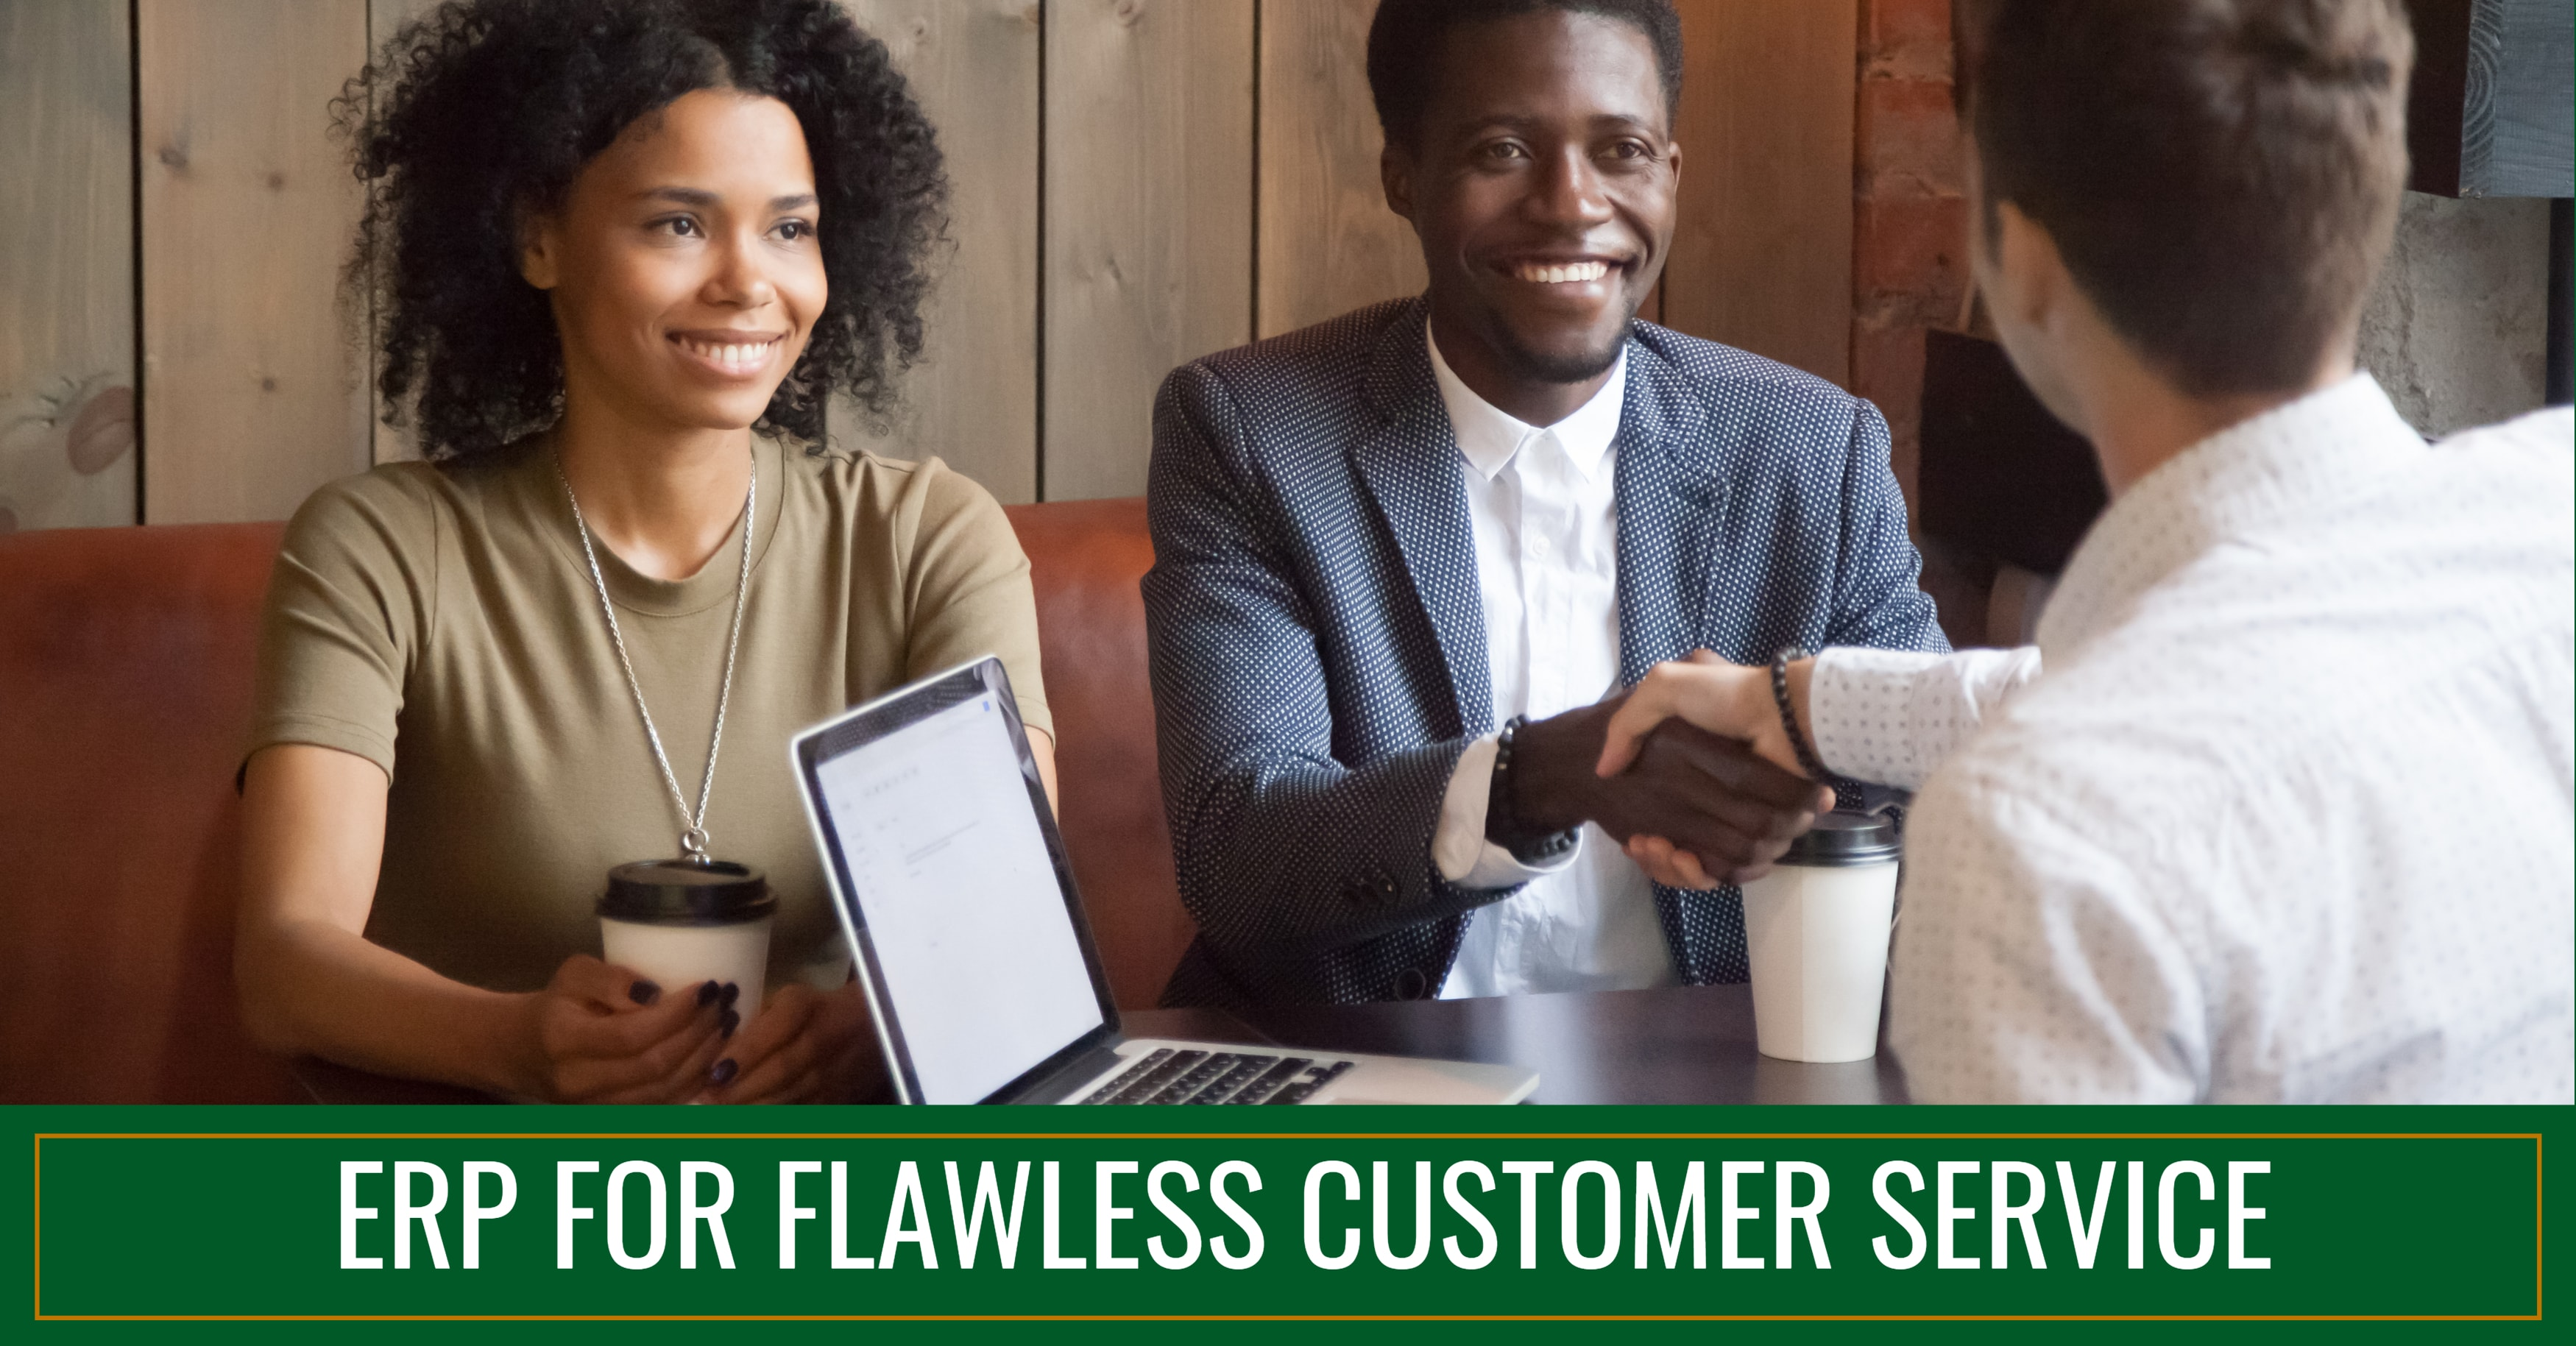 Leverage ERP and Big Data for Flawless Customer Service